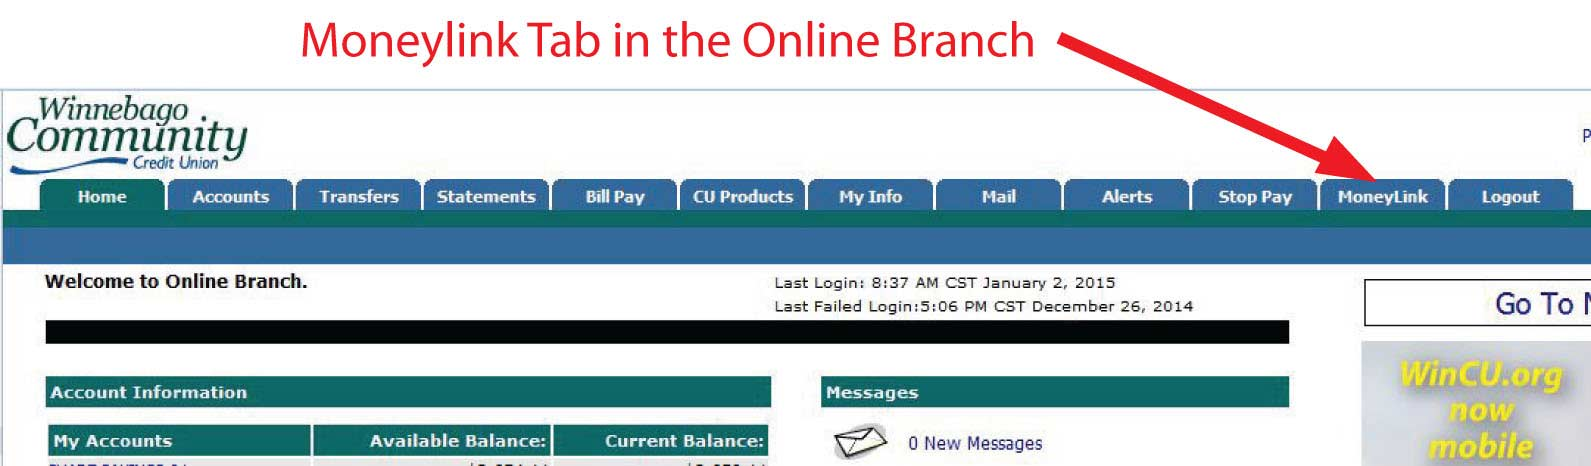 Moneylink Tab in the Online Branch